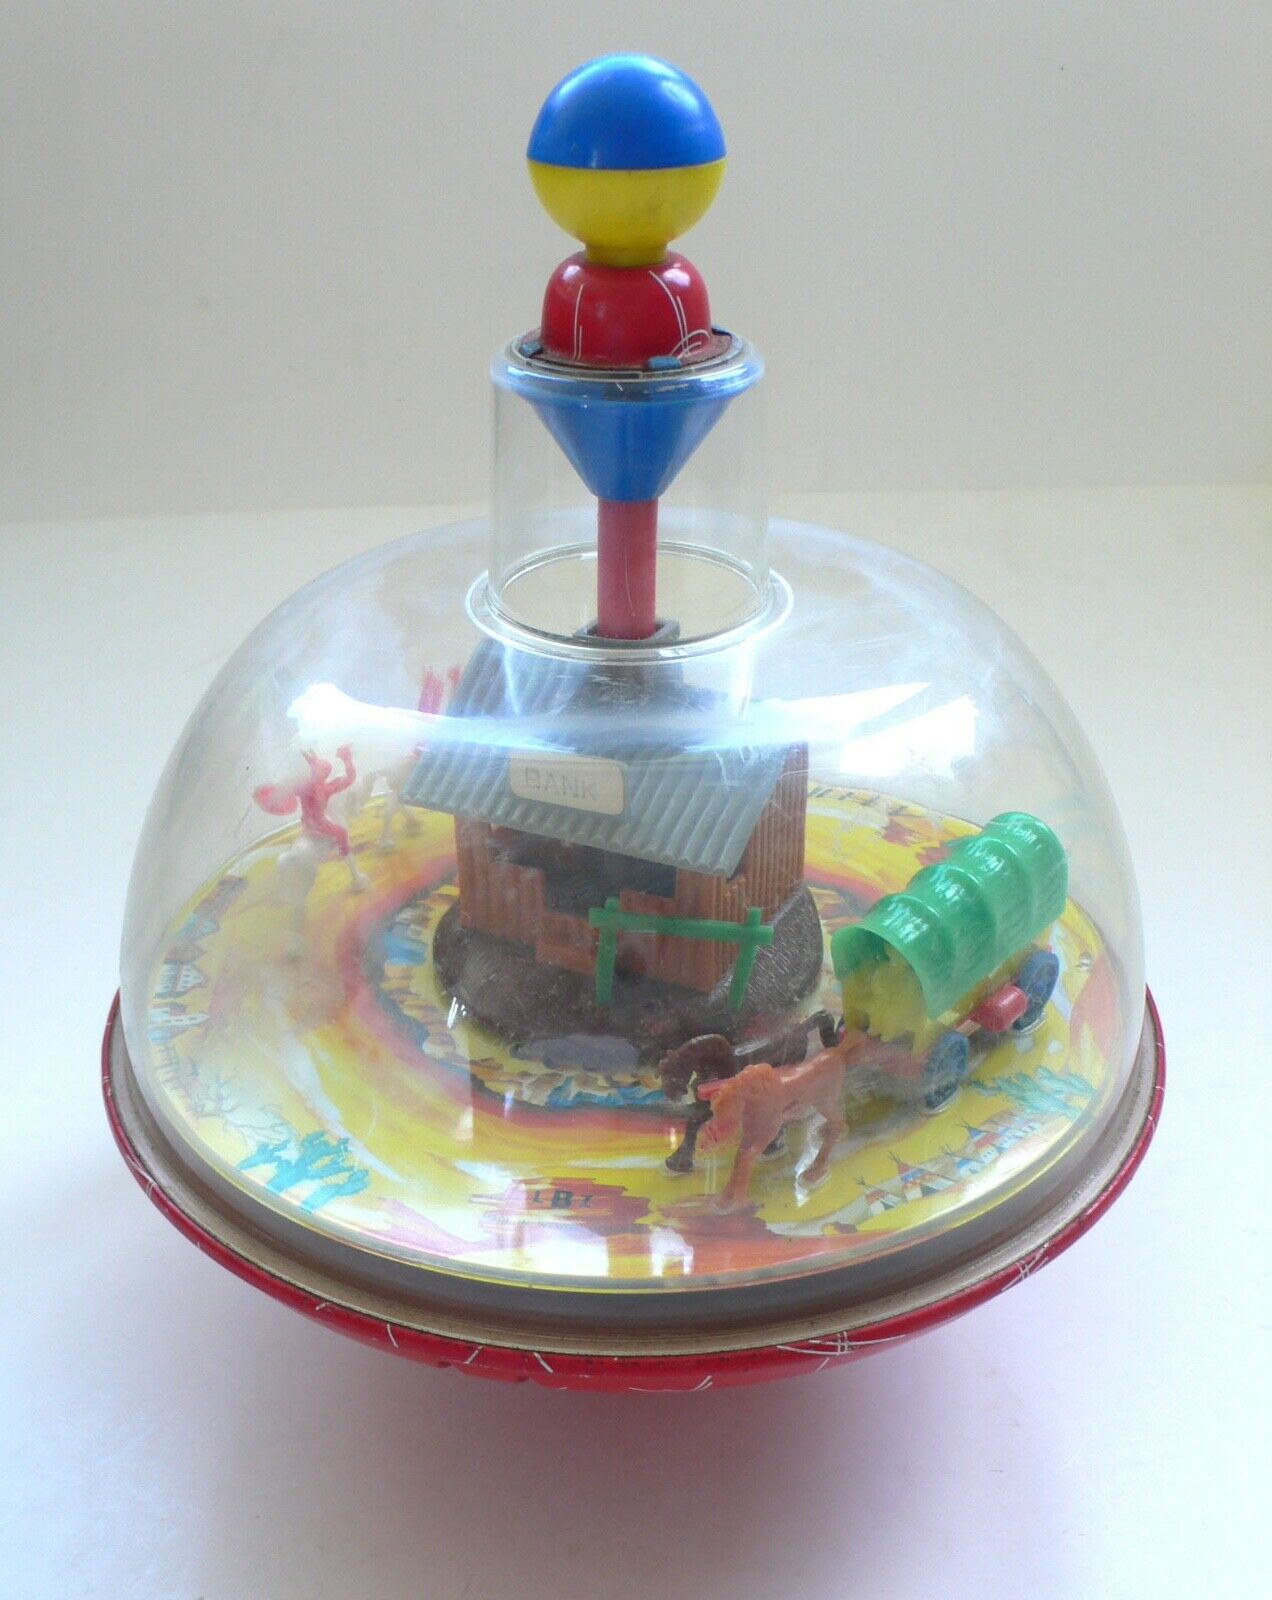 Vintage Toupie Spinning Top Tin & Plastic Plastic toy WILD WEST WESTERN 1960's Germany